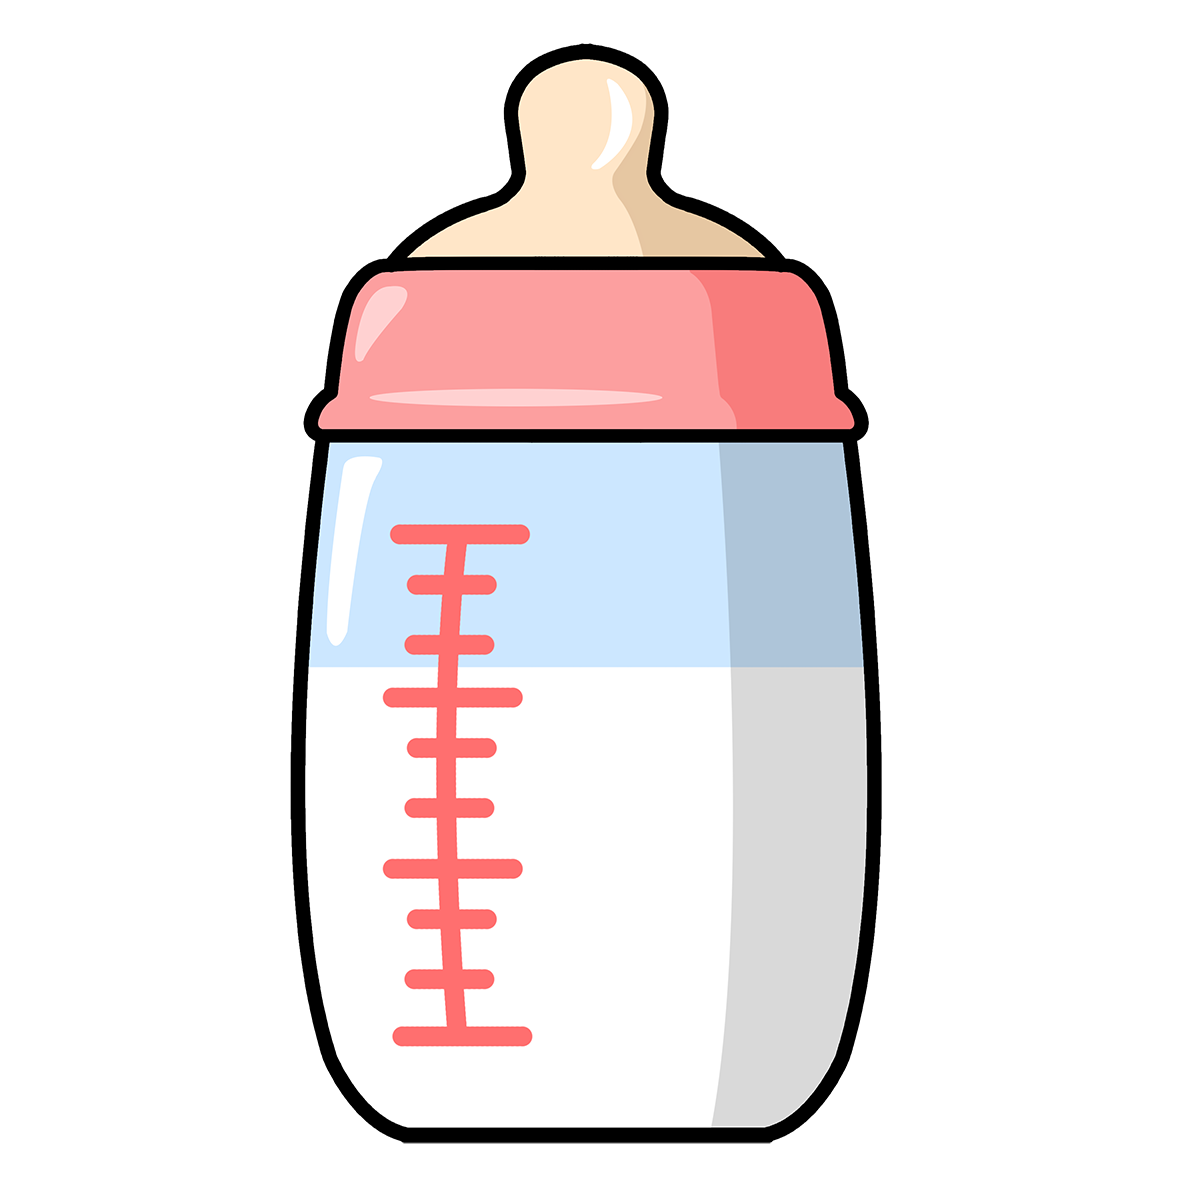 Deer clipart cute. Cartoon baby bottle